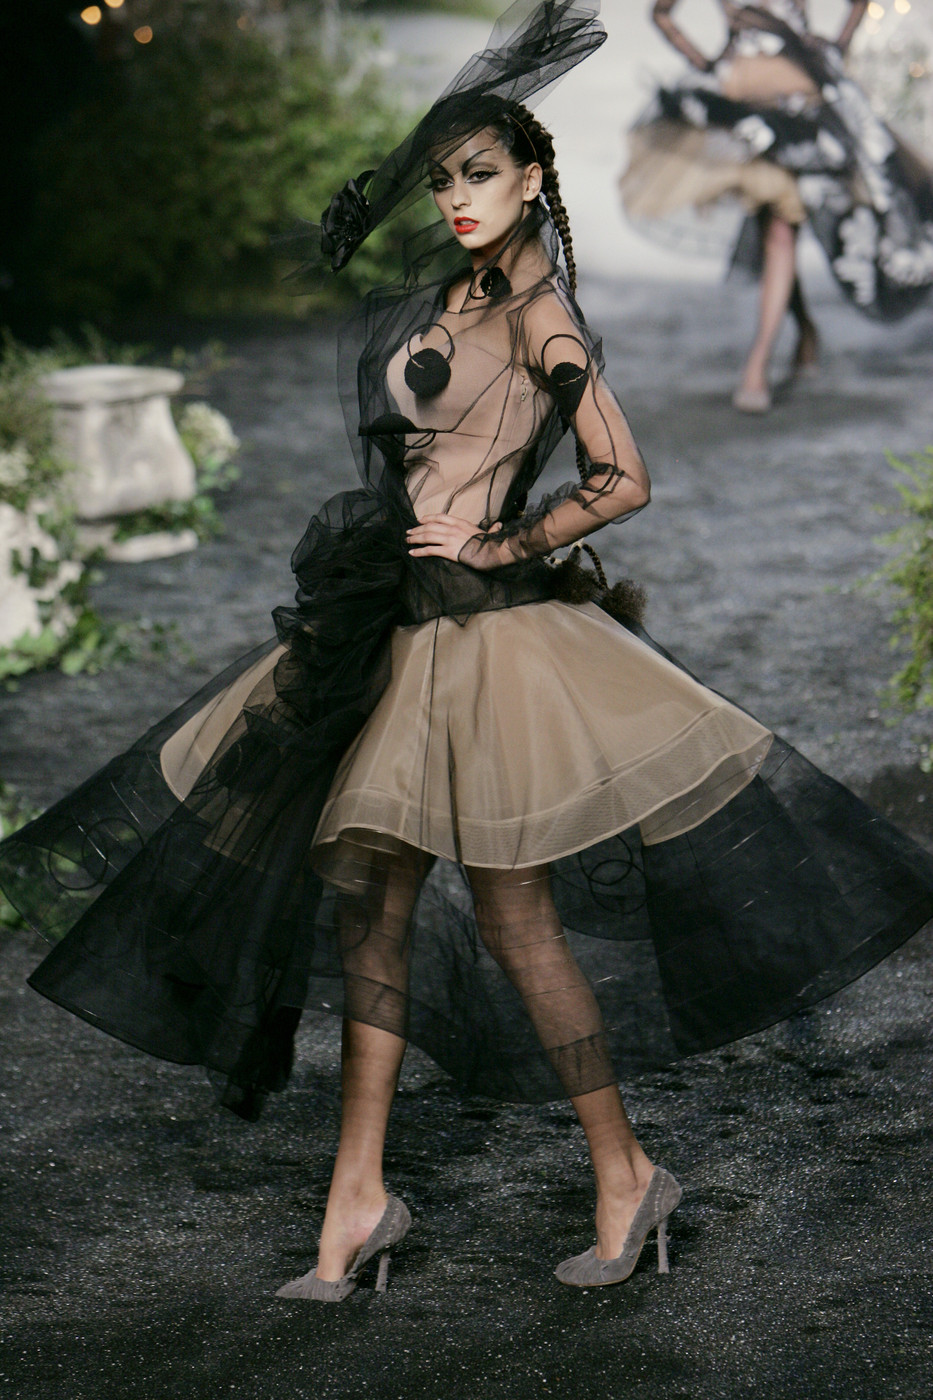 Christian dior at couture fall 2005 stylebistro for American haute couture designers